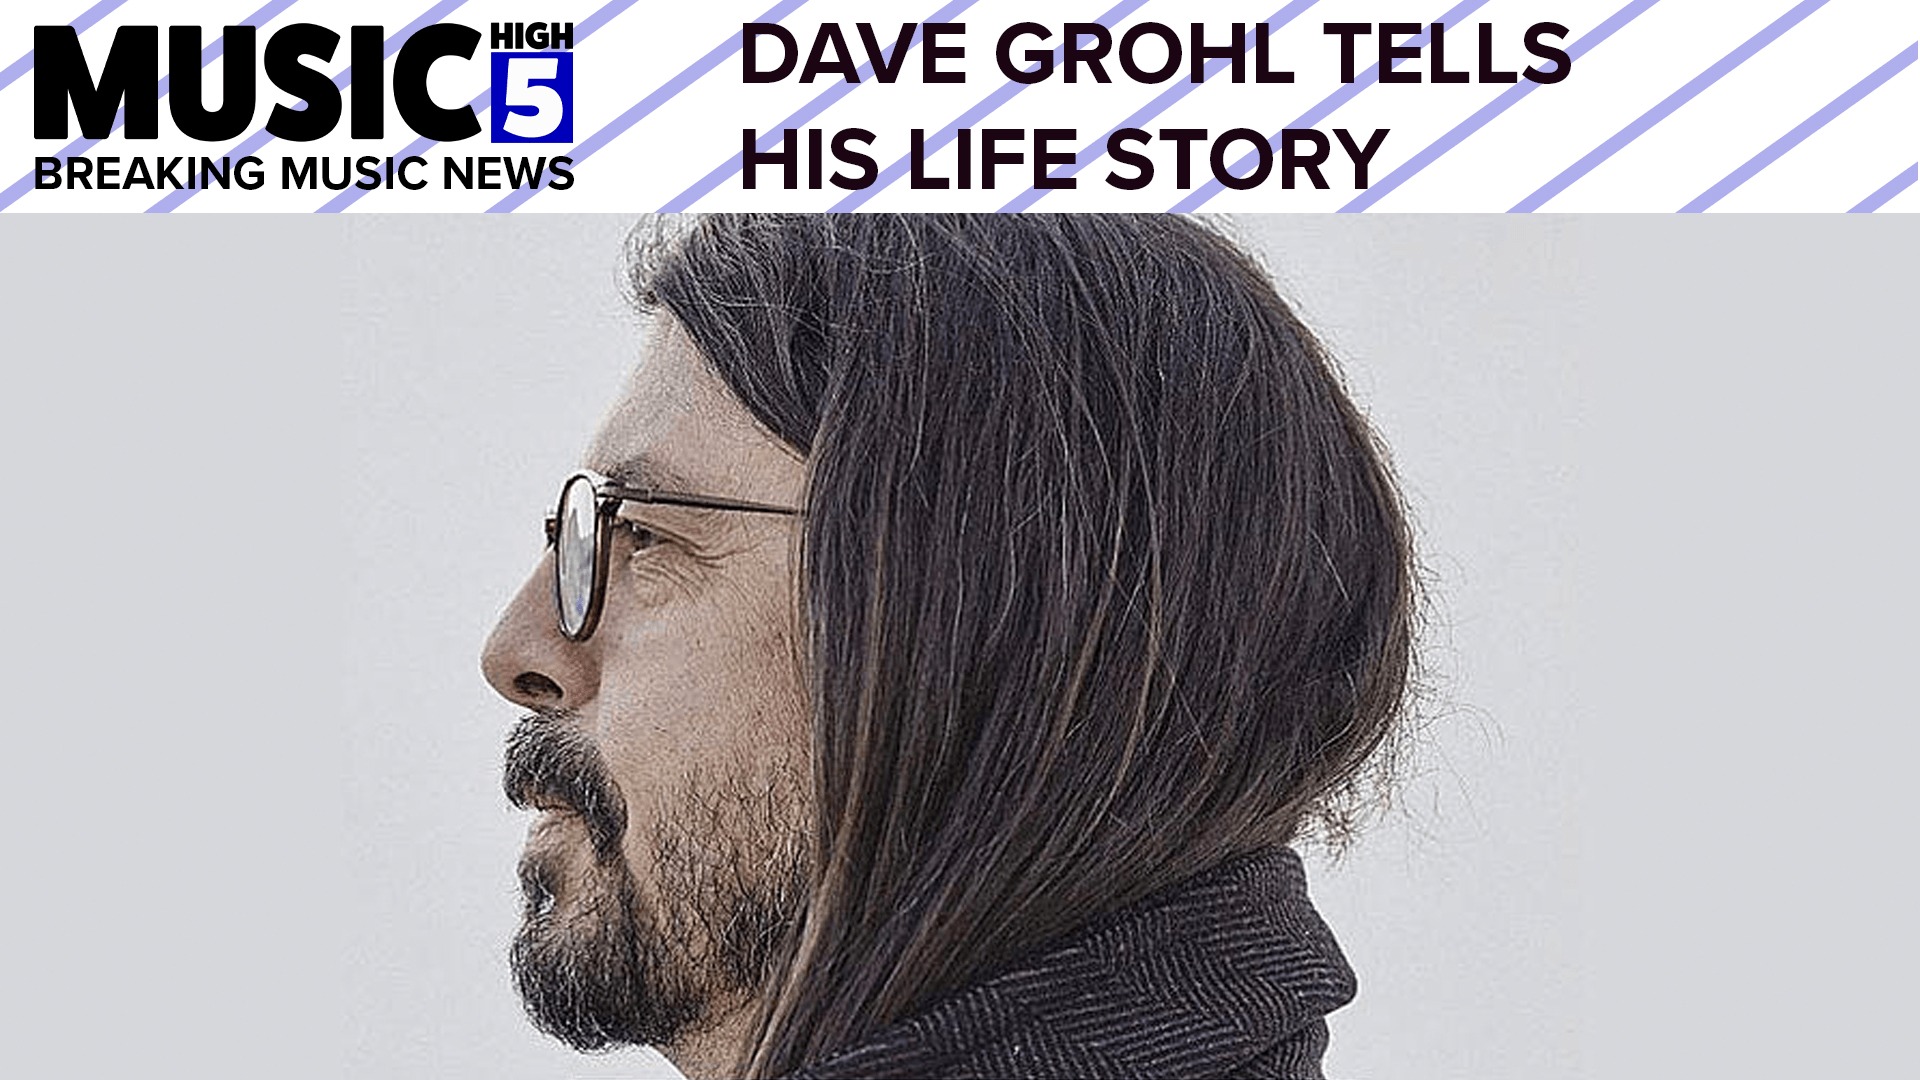 Dave Grohl Tells His Life Story | Music High 5